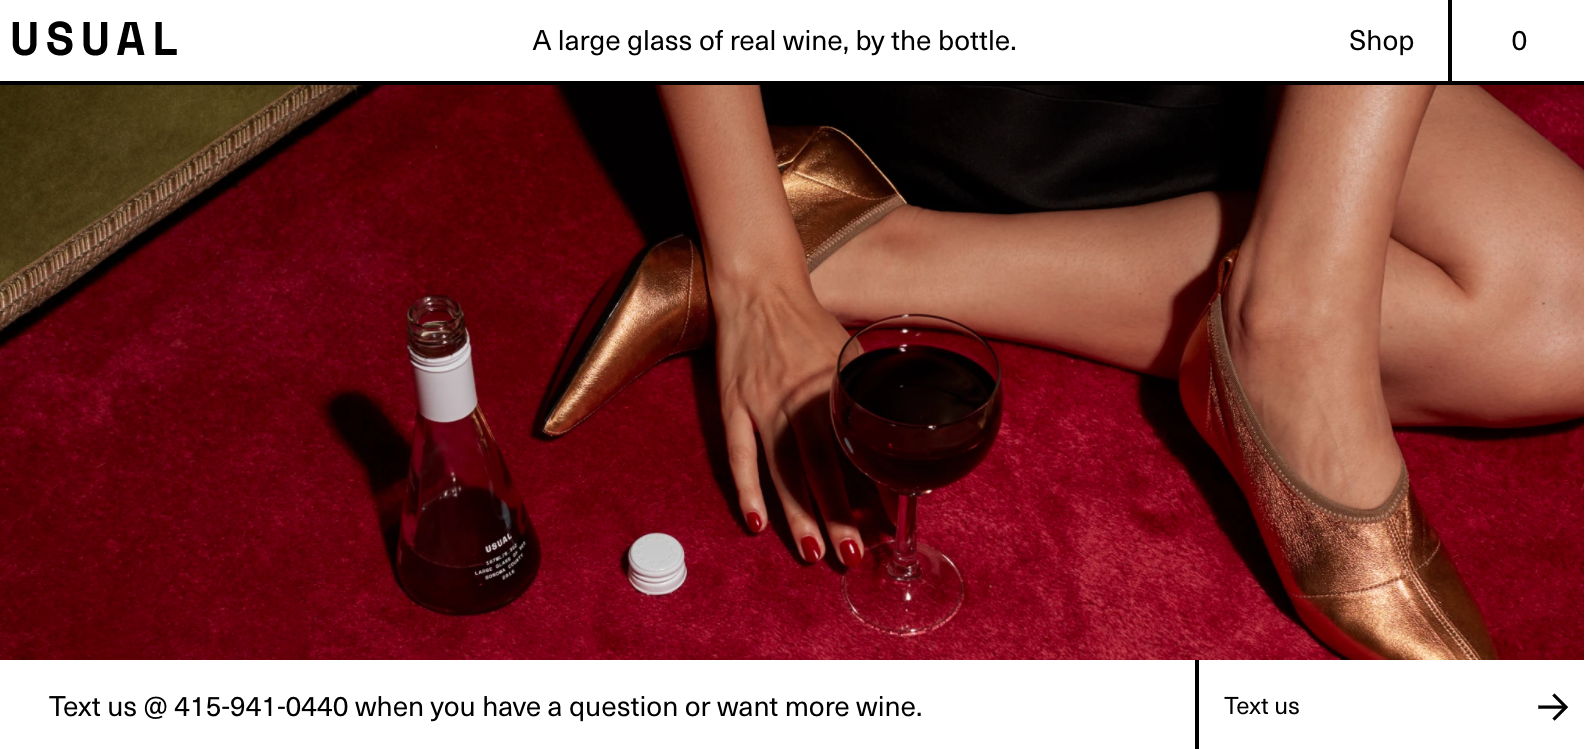 An image from Usual Wines' website showing that you can text them with questions